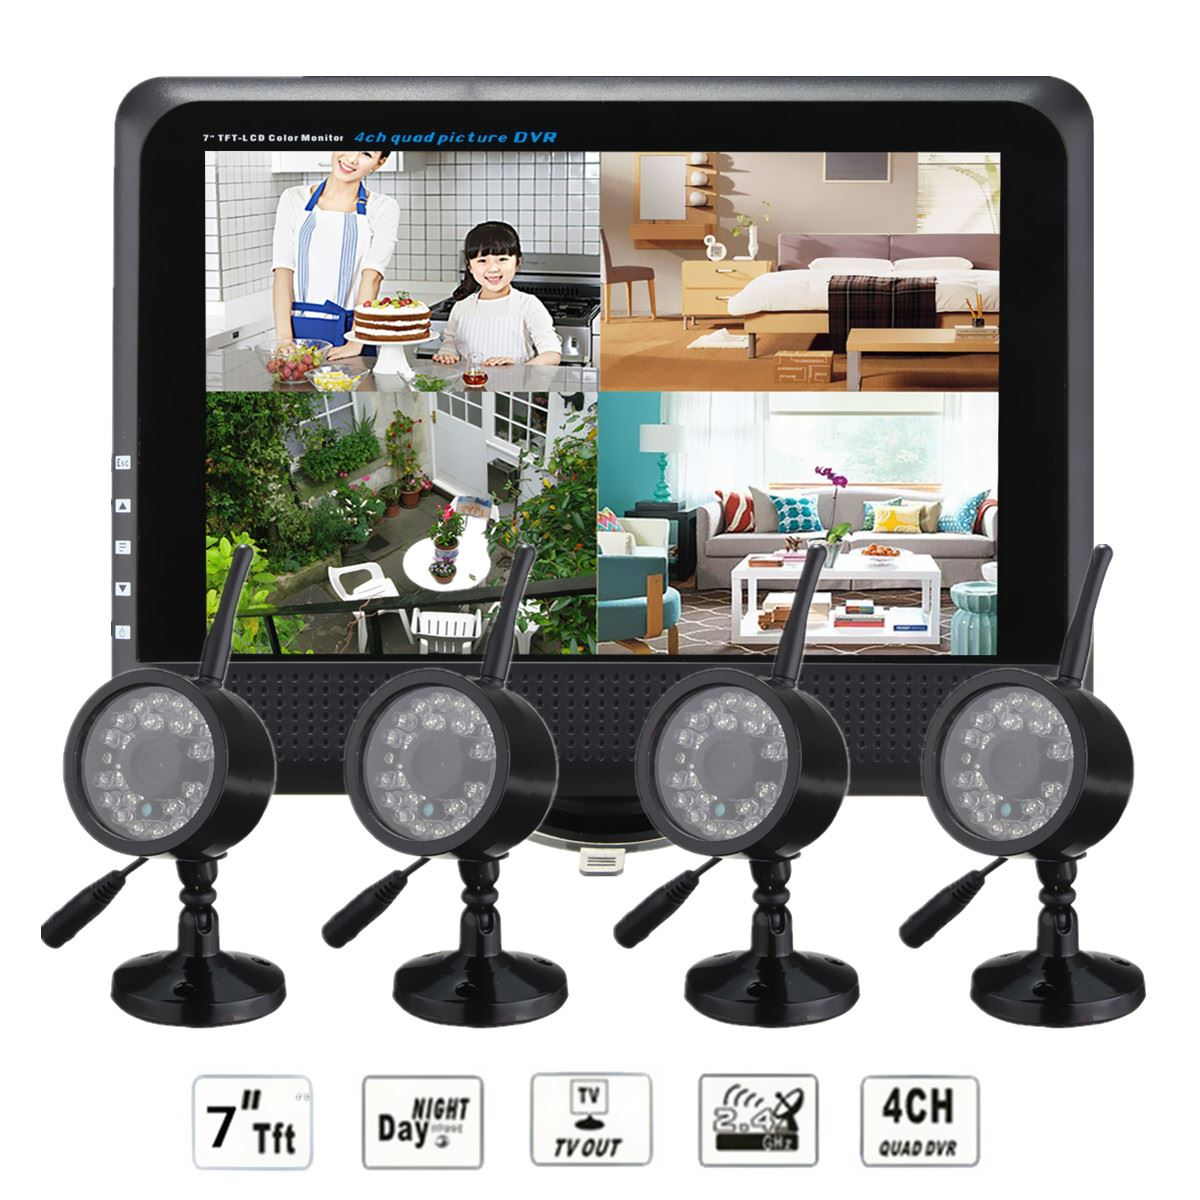 NEW 7inch LCD Digital Wireless Monitor DVR CCTV Kit 4 Channel Quad Security System With 4 Cameras Baby monitor Record EU Plug(China (Mainland))